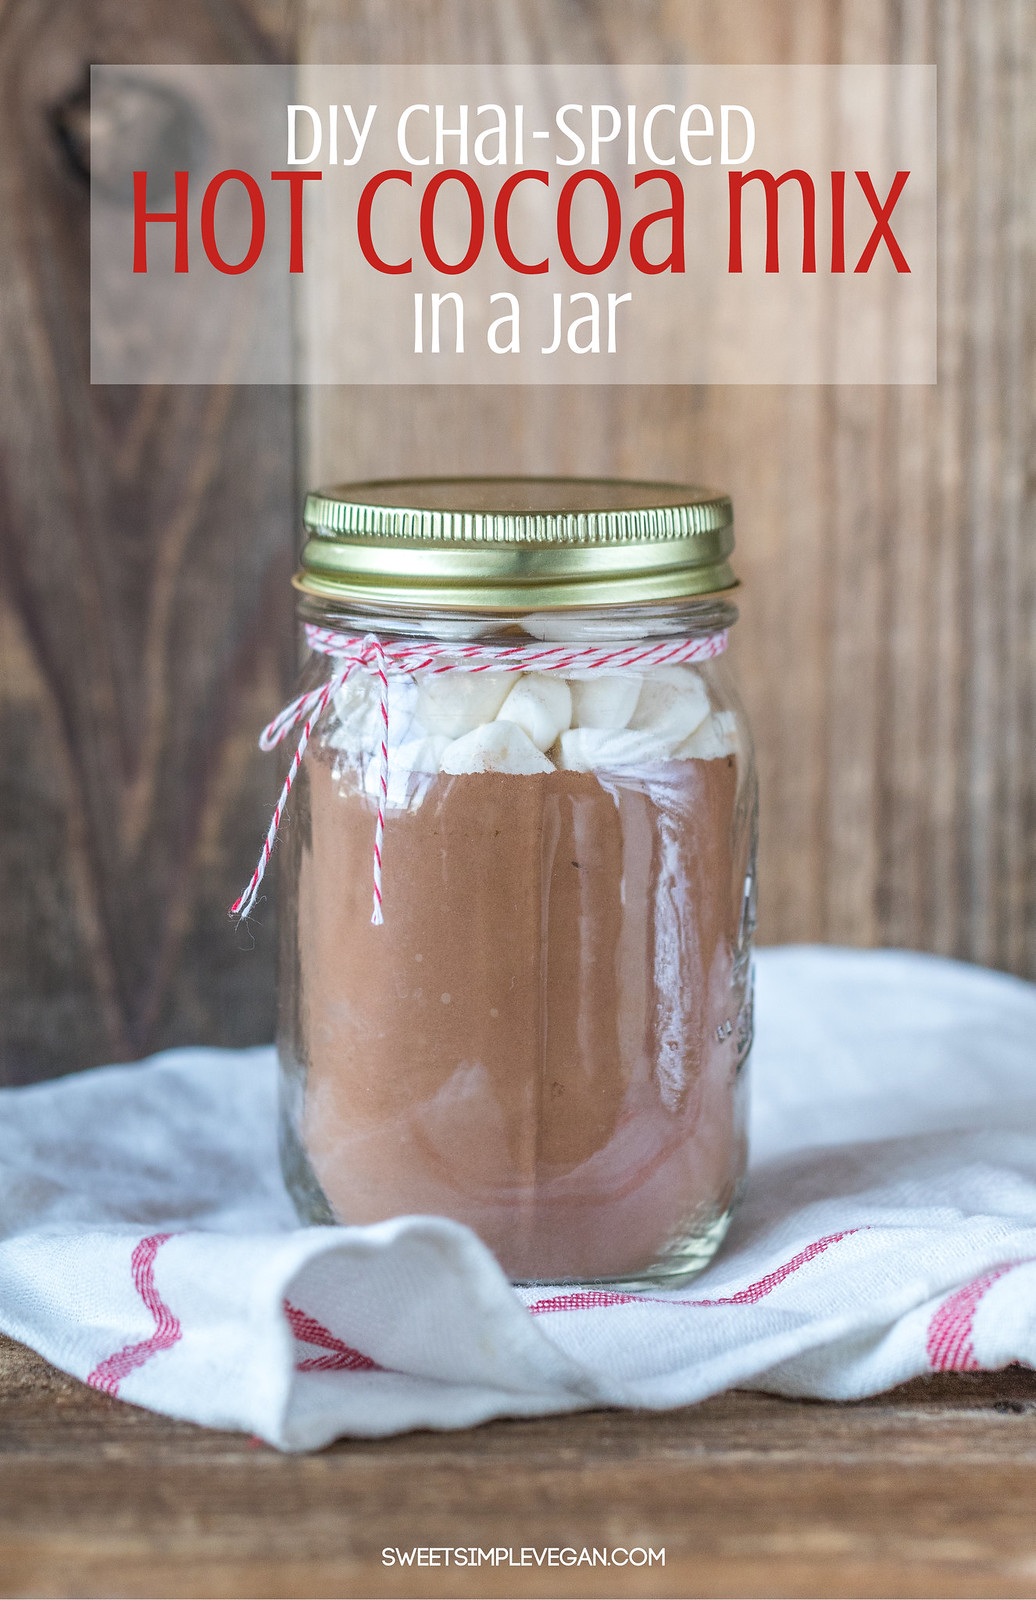 Chai Spiced Hot Cocoa Mix In A Jar - DIY Vegan Holiday Gift